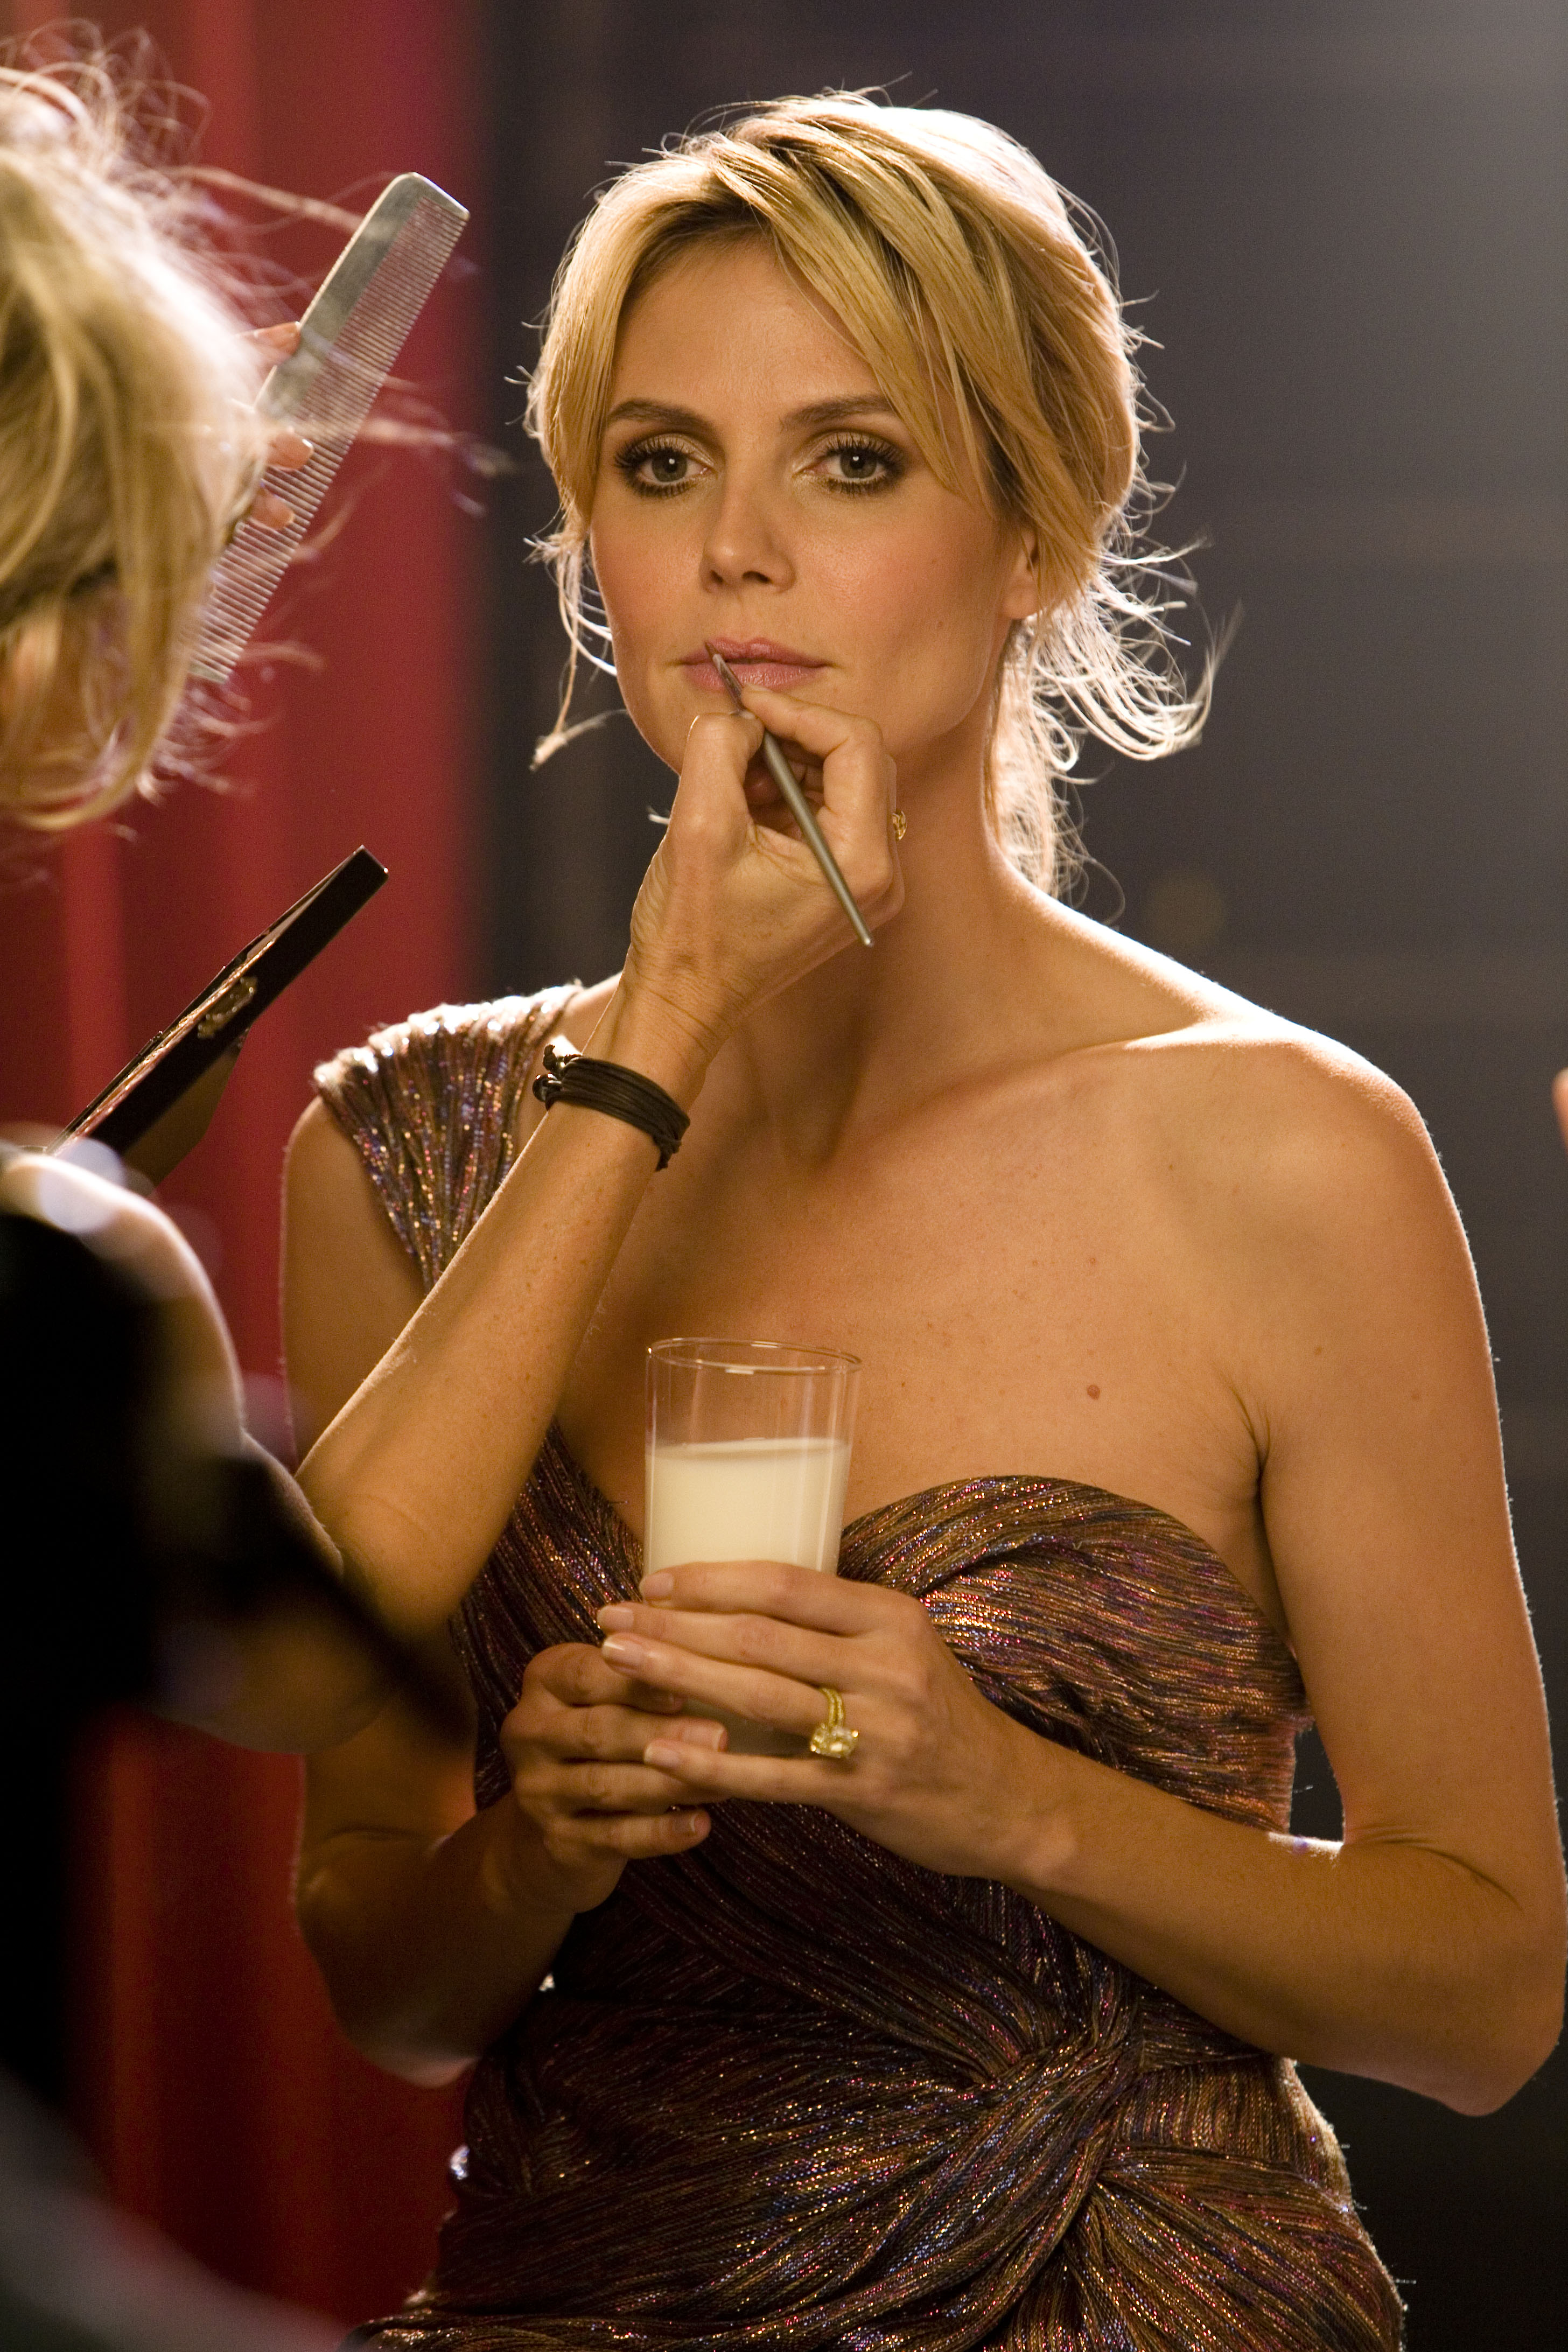 heidiklum_photo_makeup2.jpg